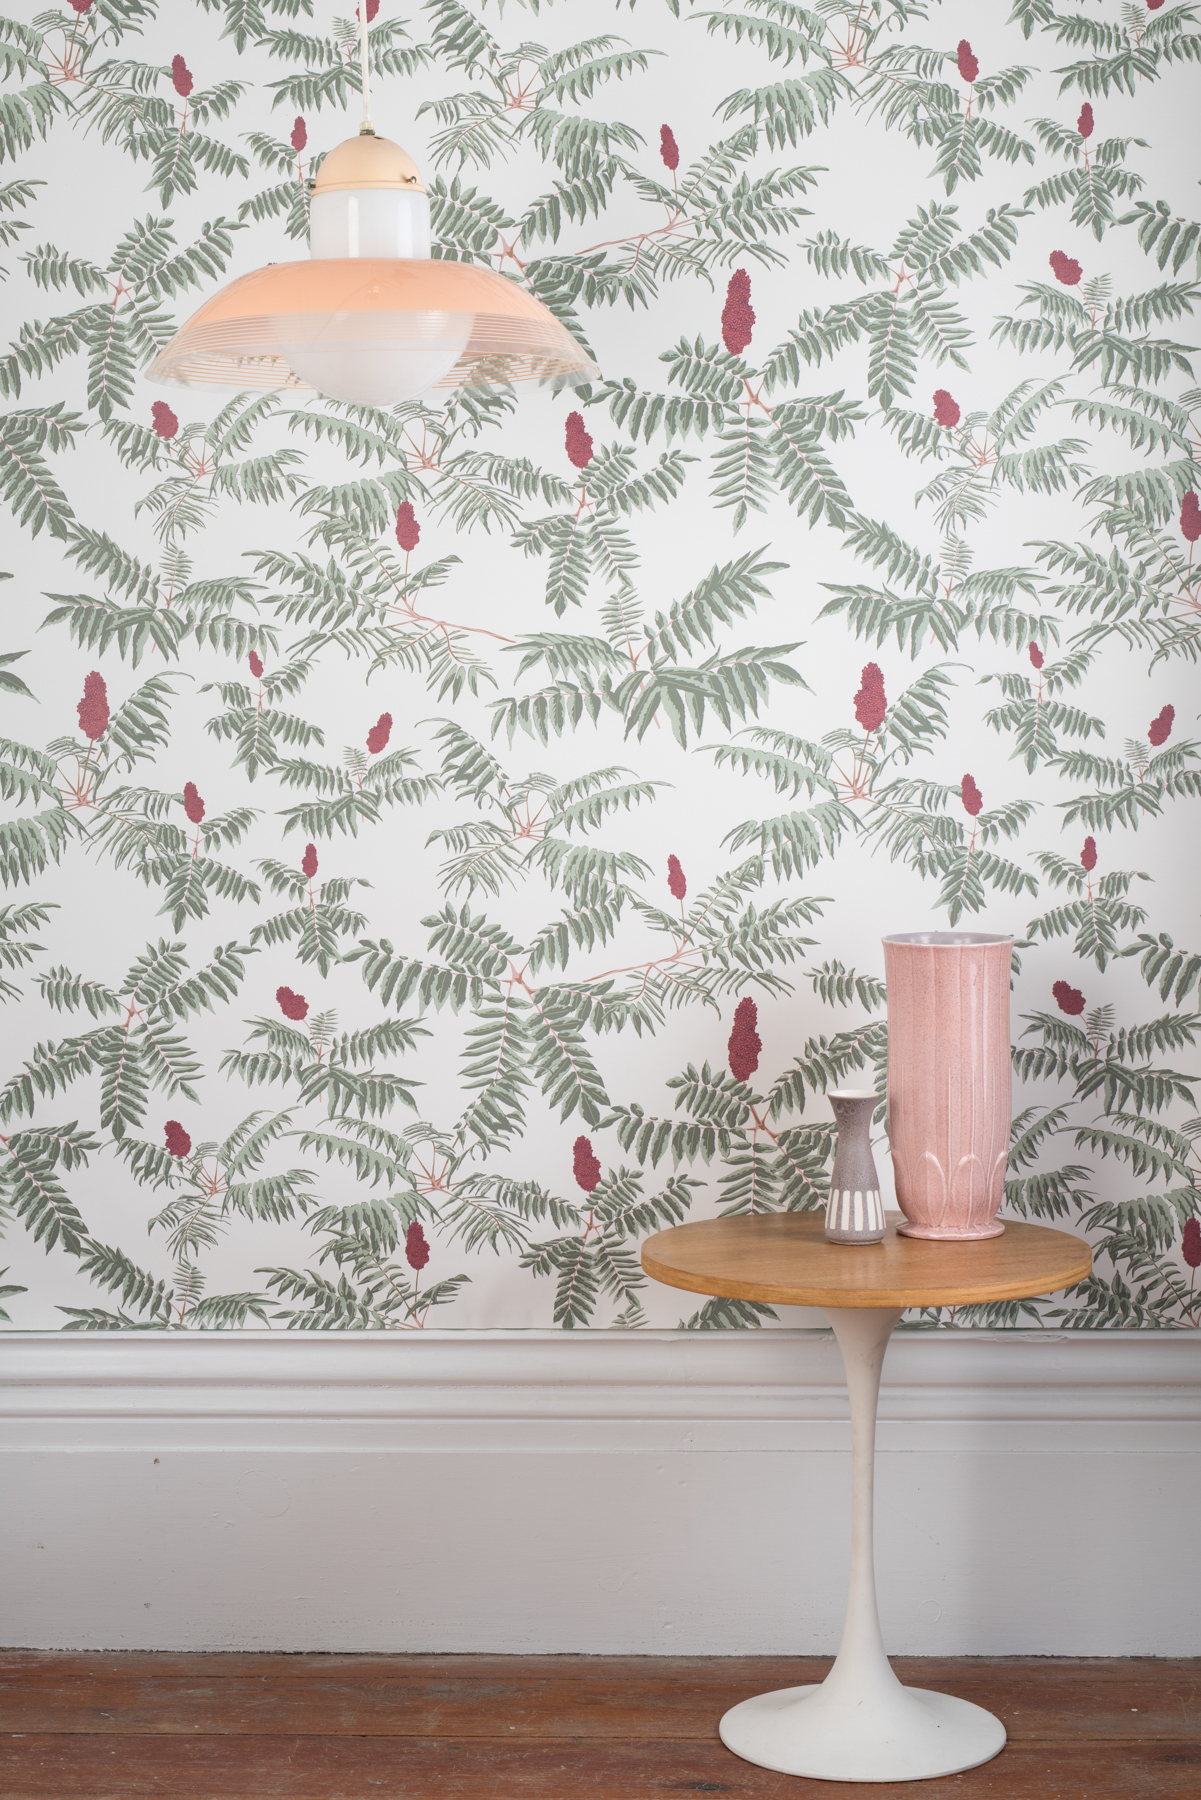 Kate Golding Sumac wallpaper // Modern wallcoverings and interior decor.